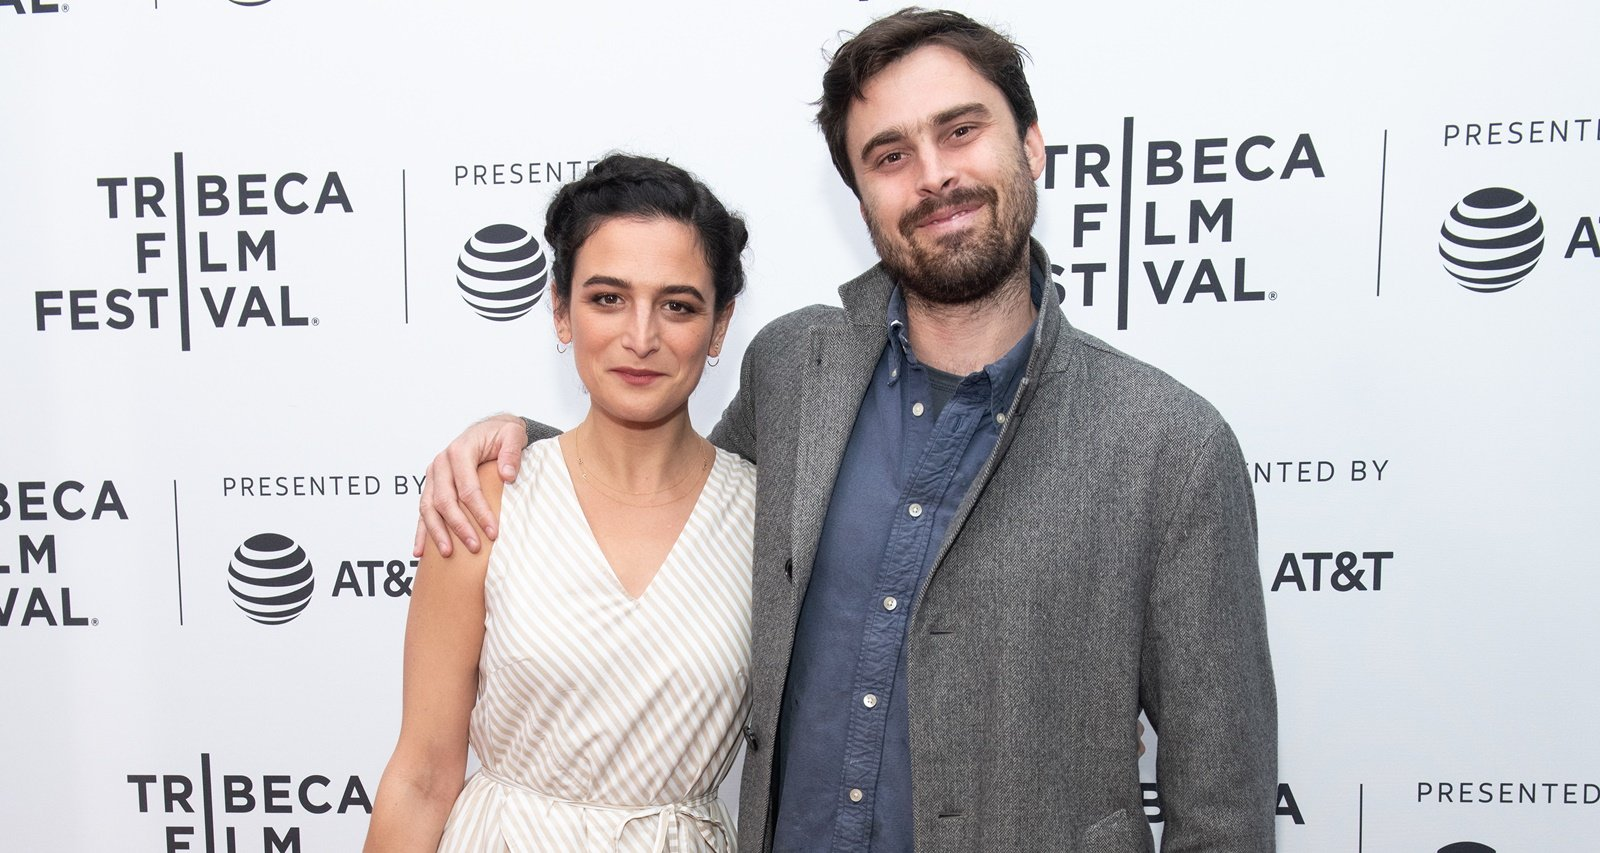 Ben Shattuck Wiki, Age, Family and Facts About Jenny Slate's Boyfriend-Turned-Fiancé